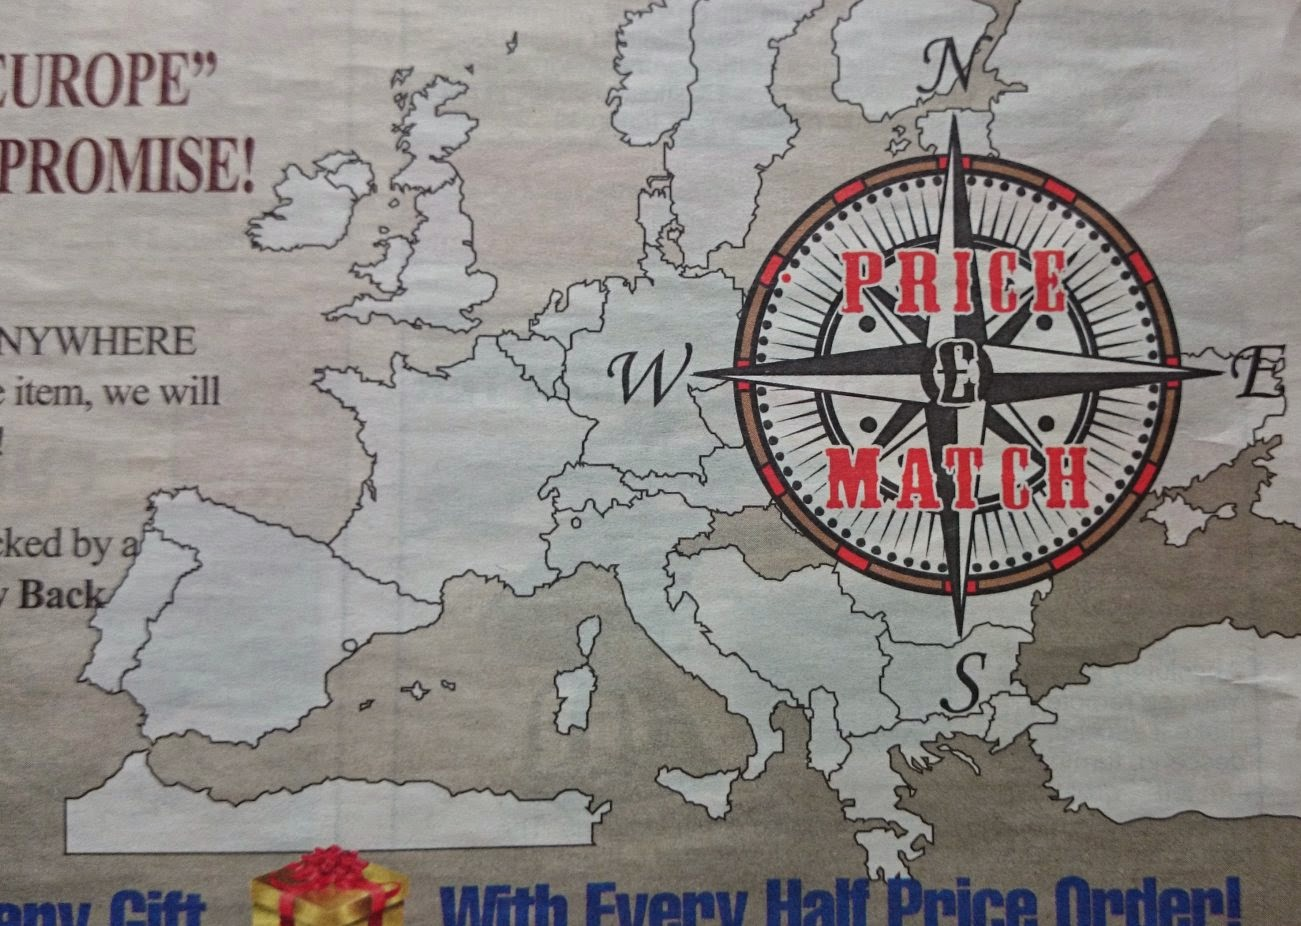 Insert crisps to continue : Epic map fail on junk catalogue